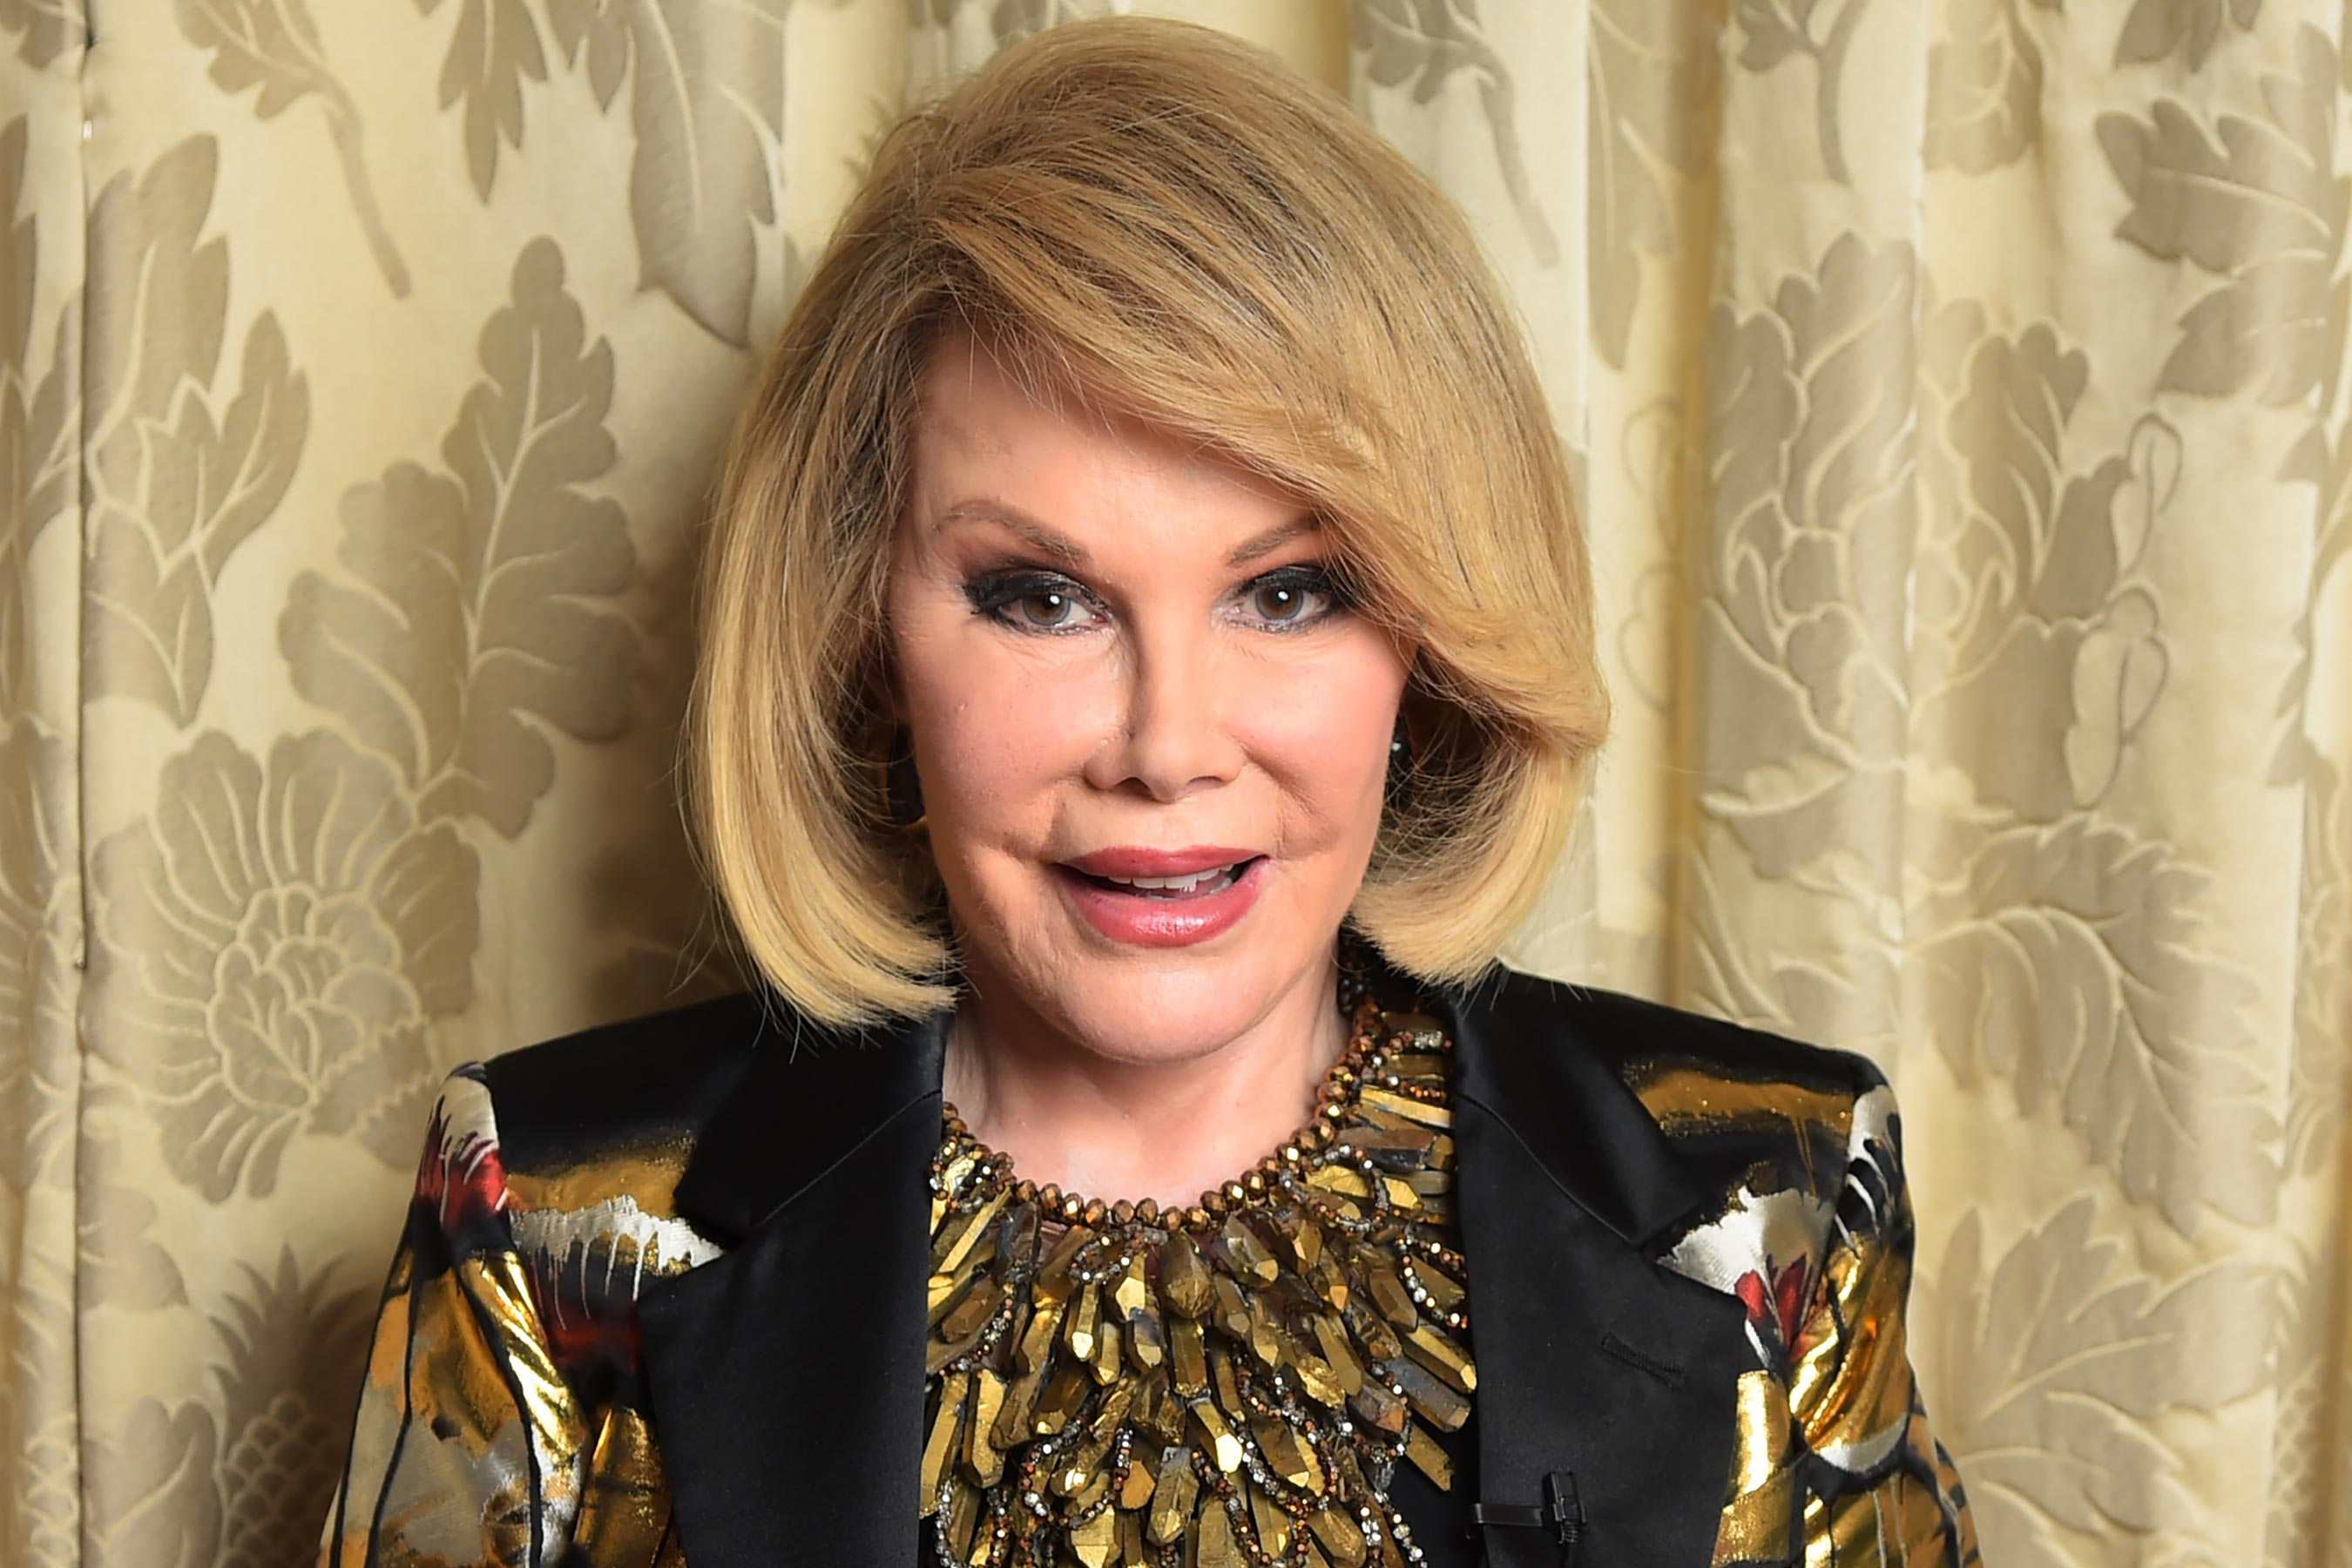 Joan Rivers talks tireless work ethic in previously unaired interview